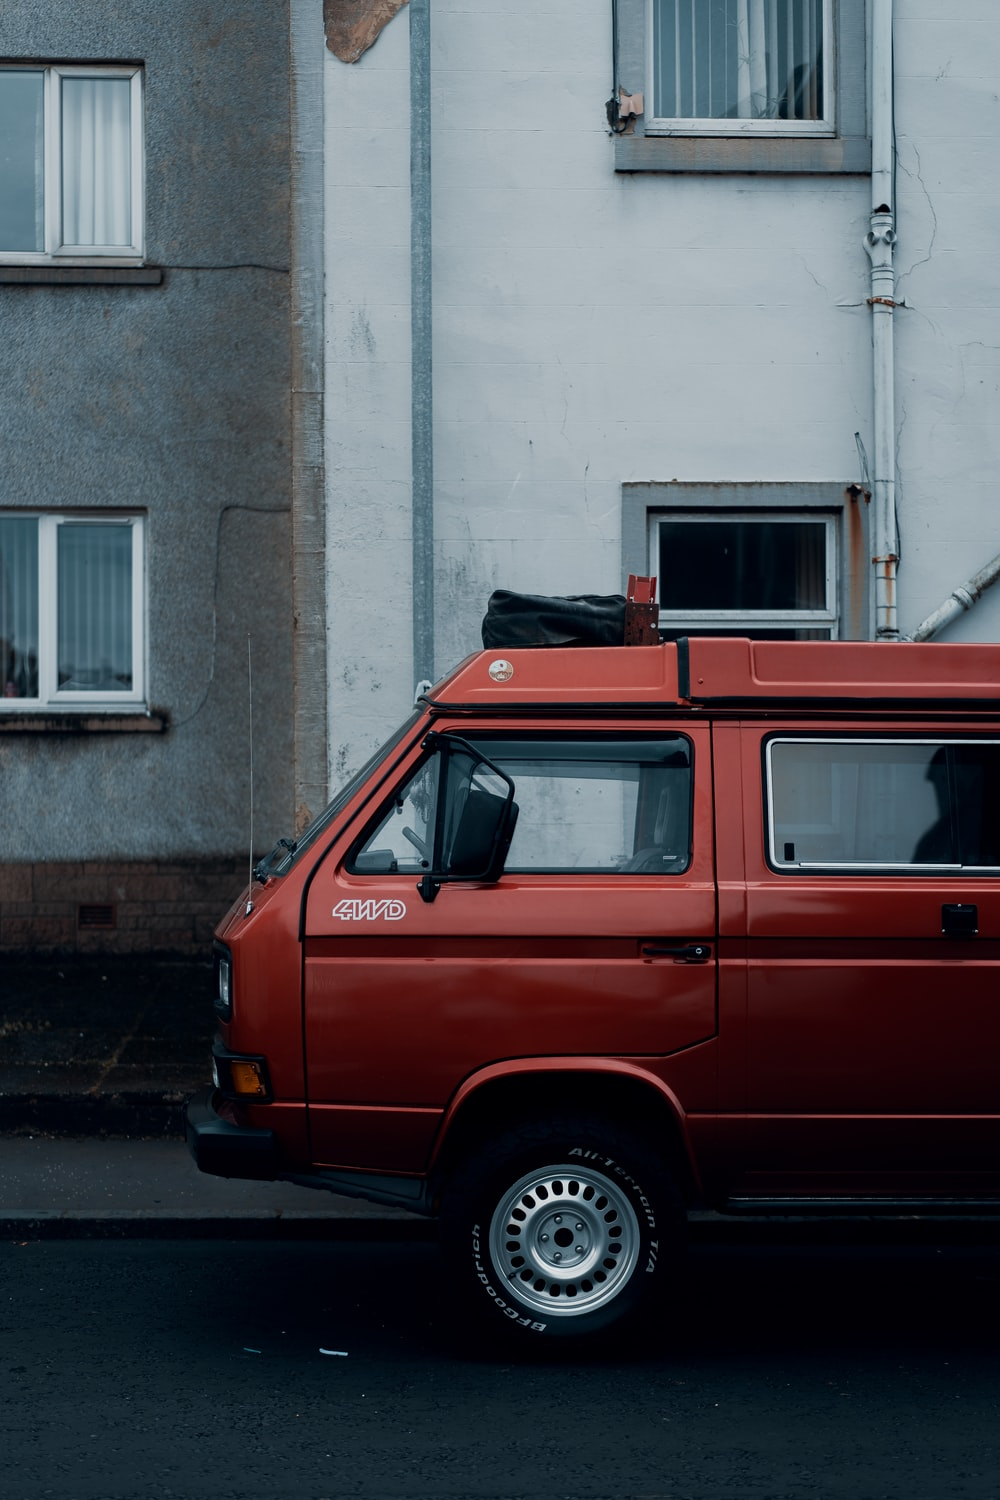 red van parked beside gray concrete building during daytime